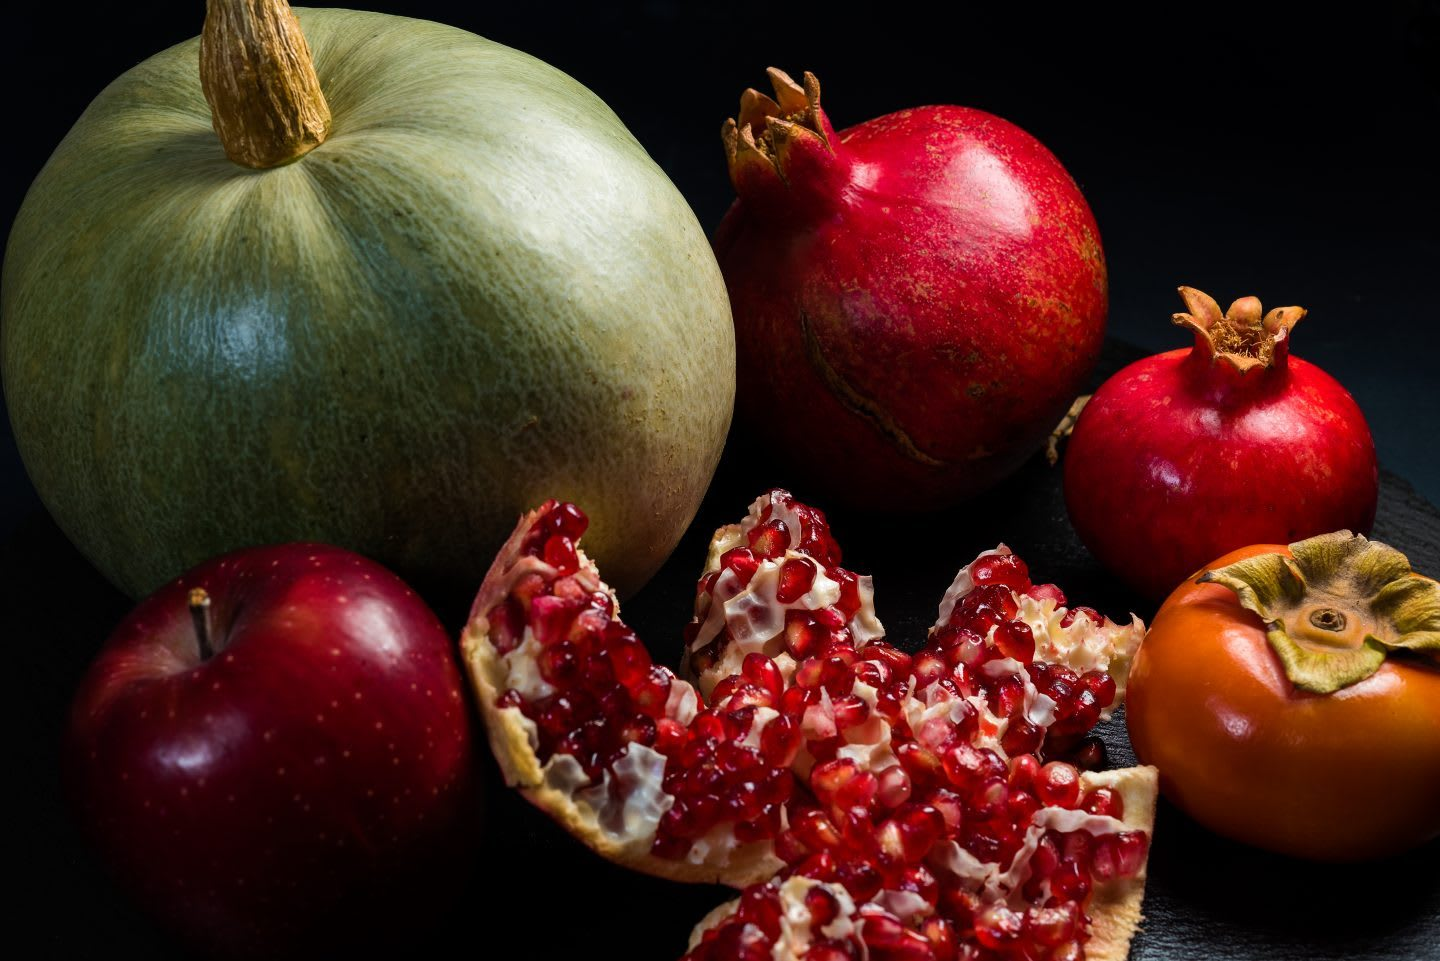 Fruits and vegetables arranged together in a group, pumpkin, apple, pomegranate, persimmon, fruits